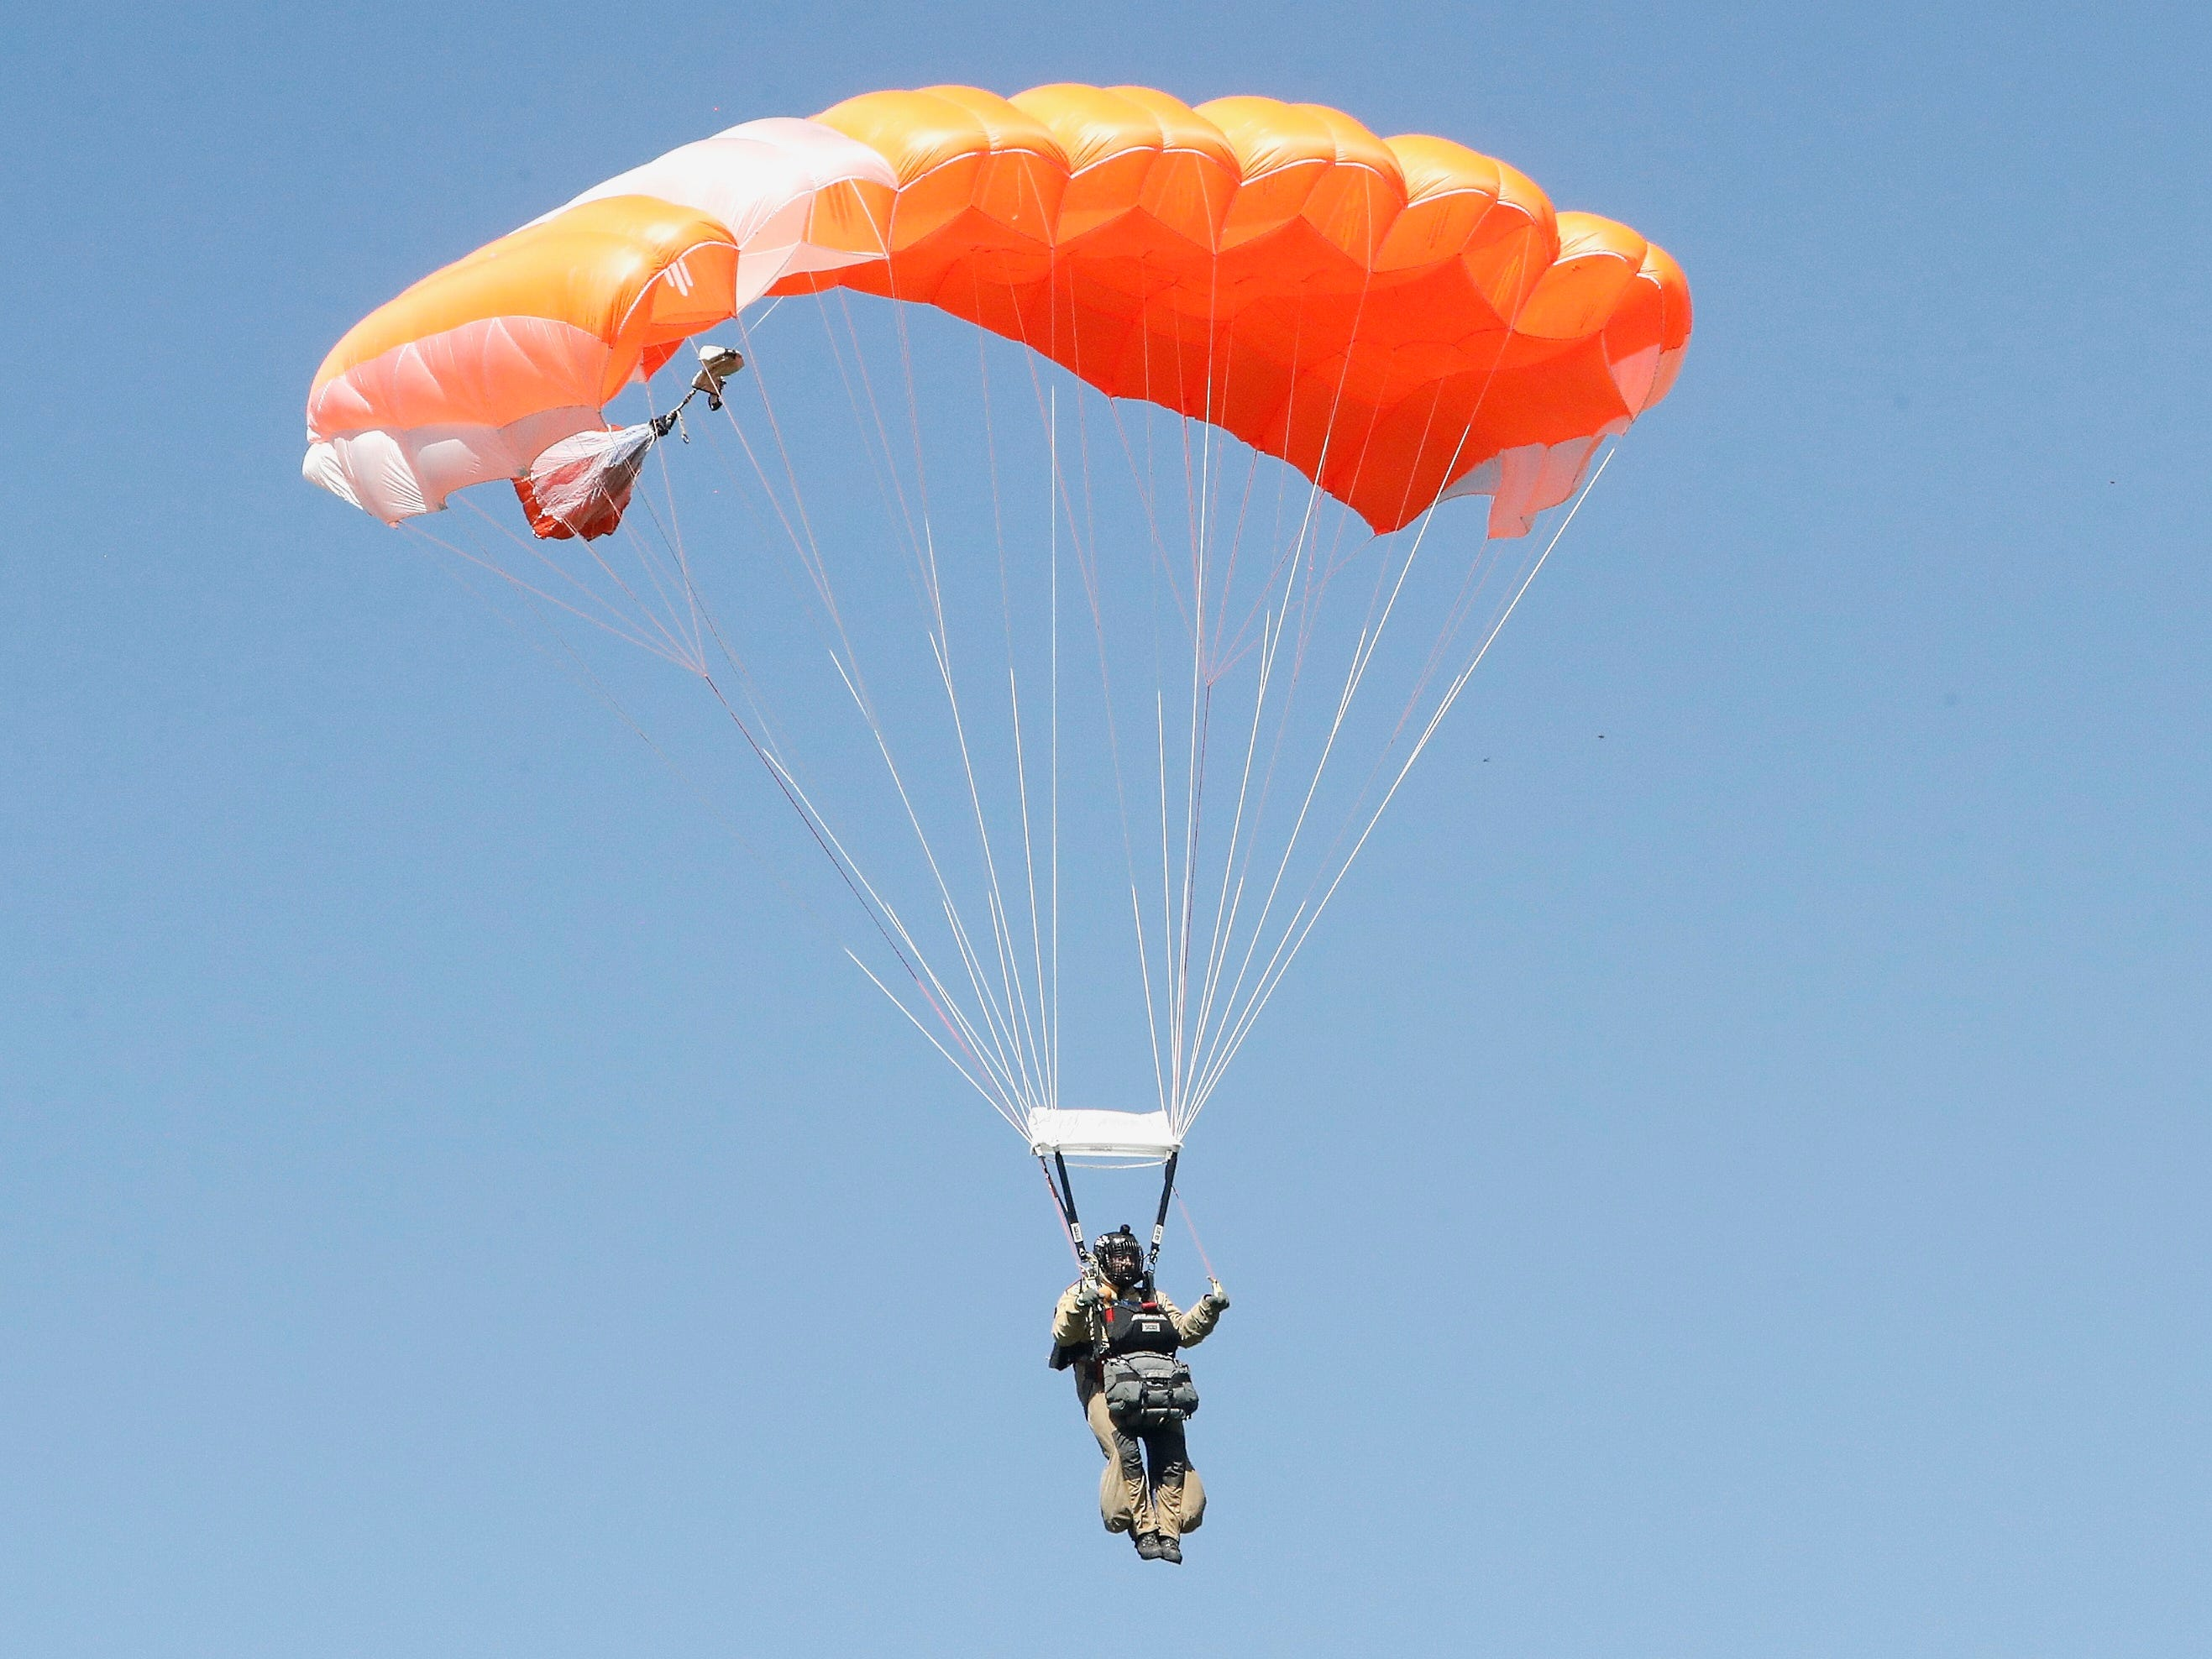 A smokejumper descends to earth during aerial firefighting training.